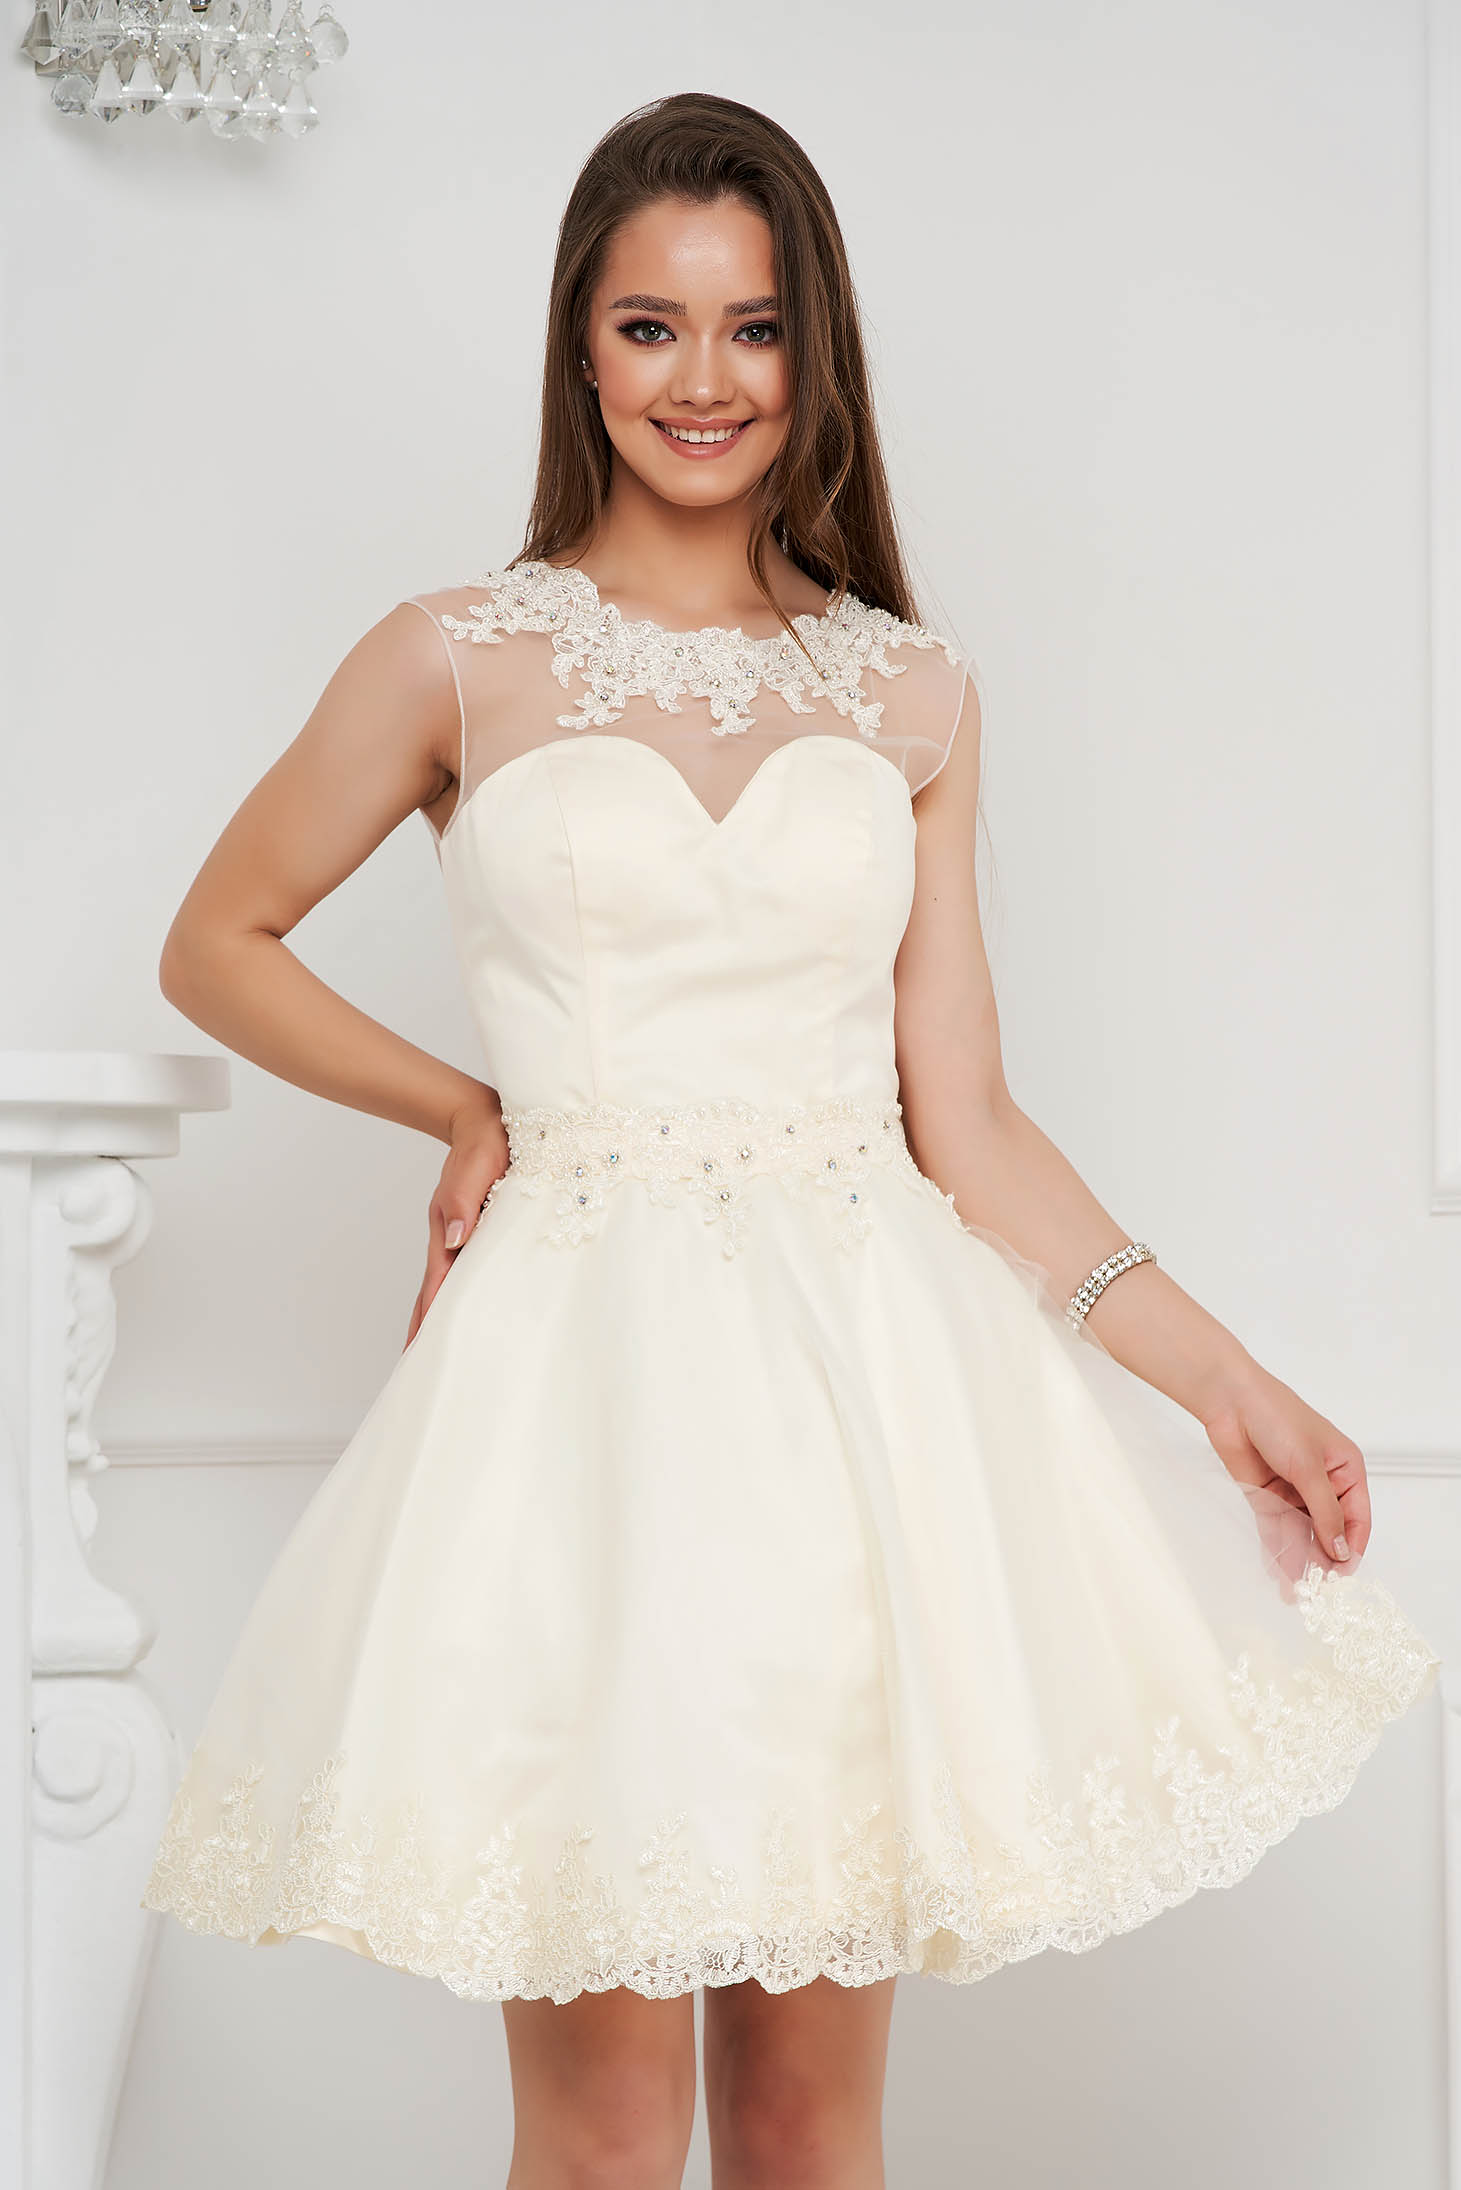 Ivory dress short cut cloche from tulle with pearls with embellished accessories